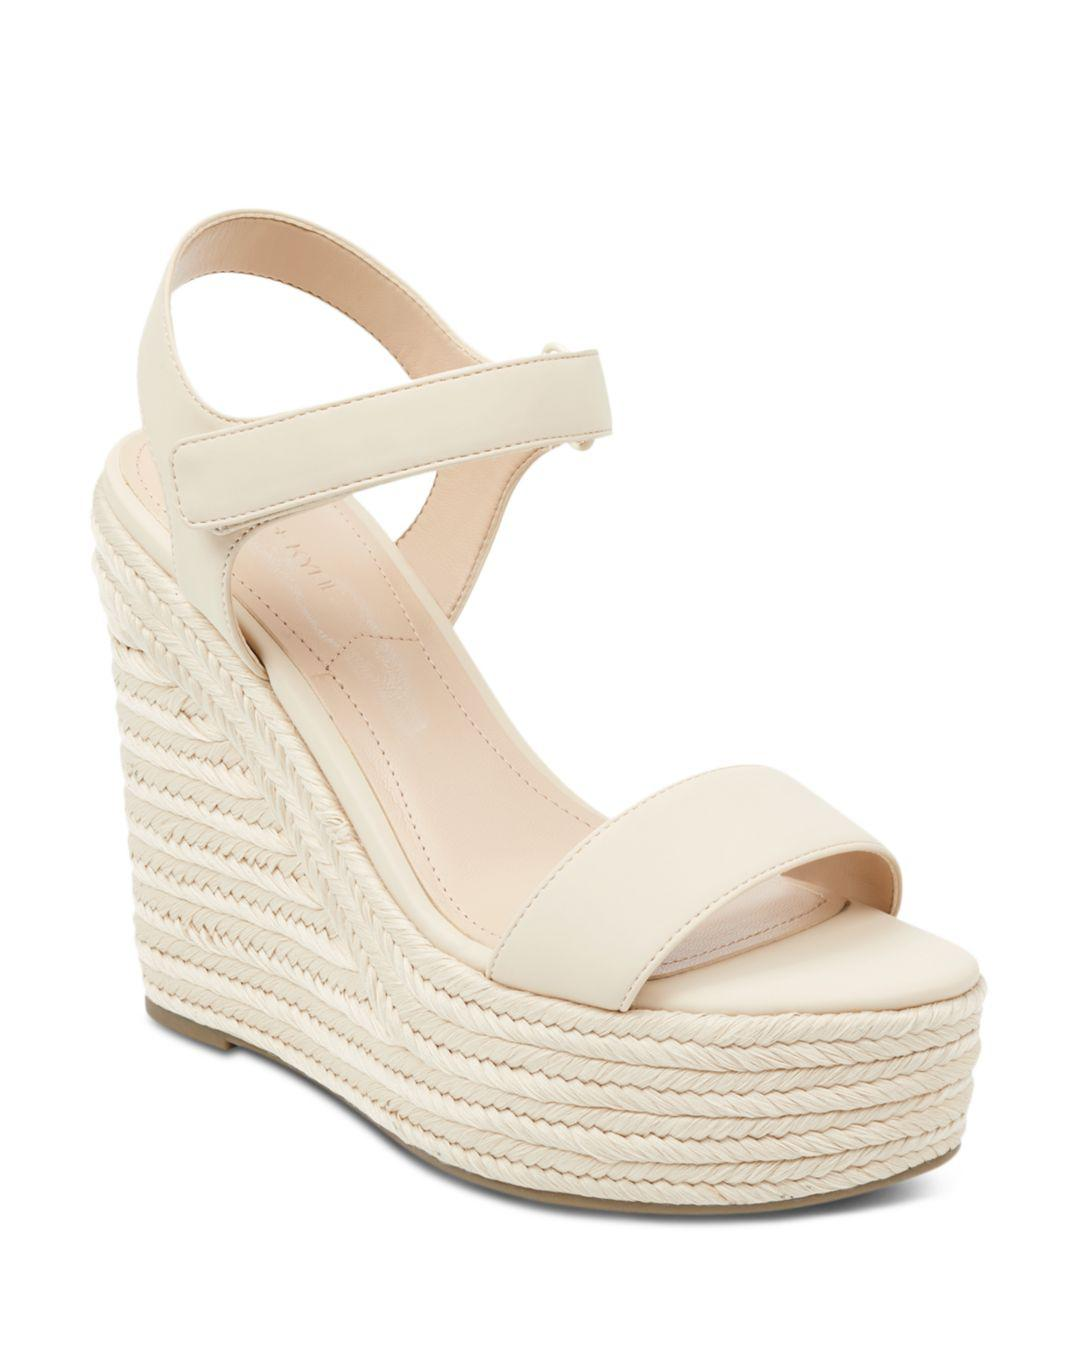 065e2708d0d6 Kendall + Kylie. Natural Kendall And Kylie Women s Grand Platform Wedge  Espadrille Sandals